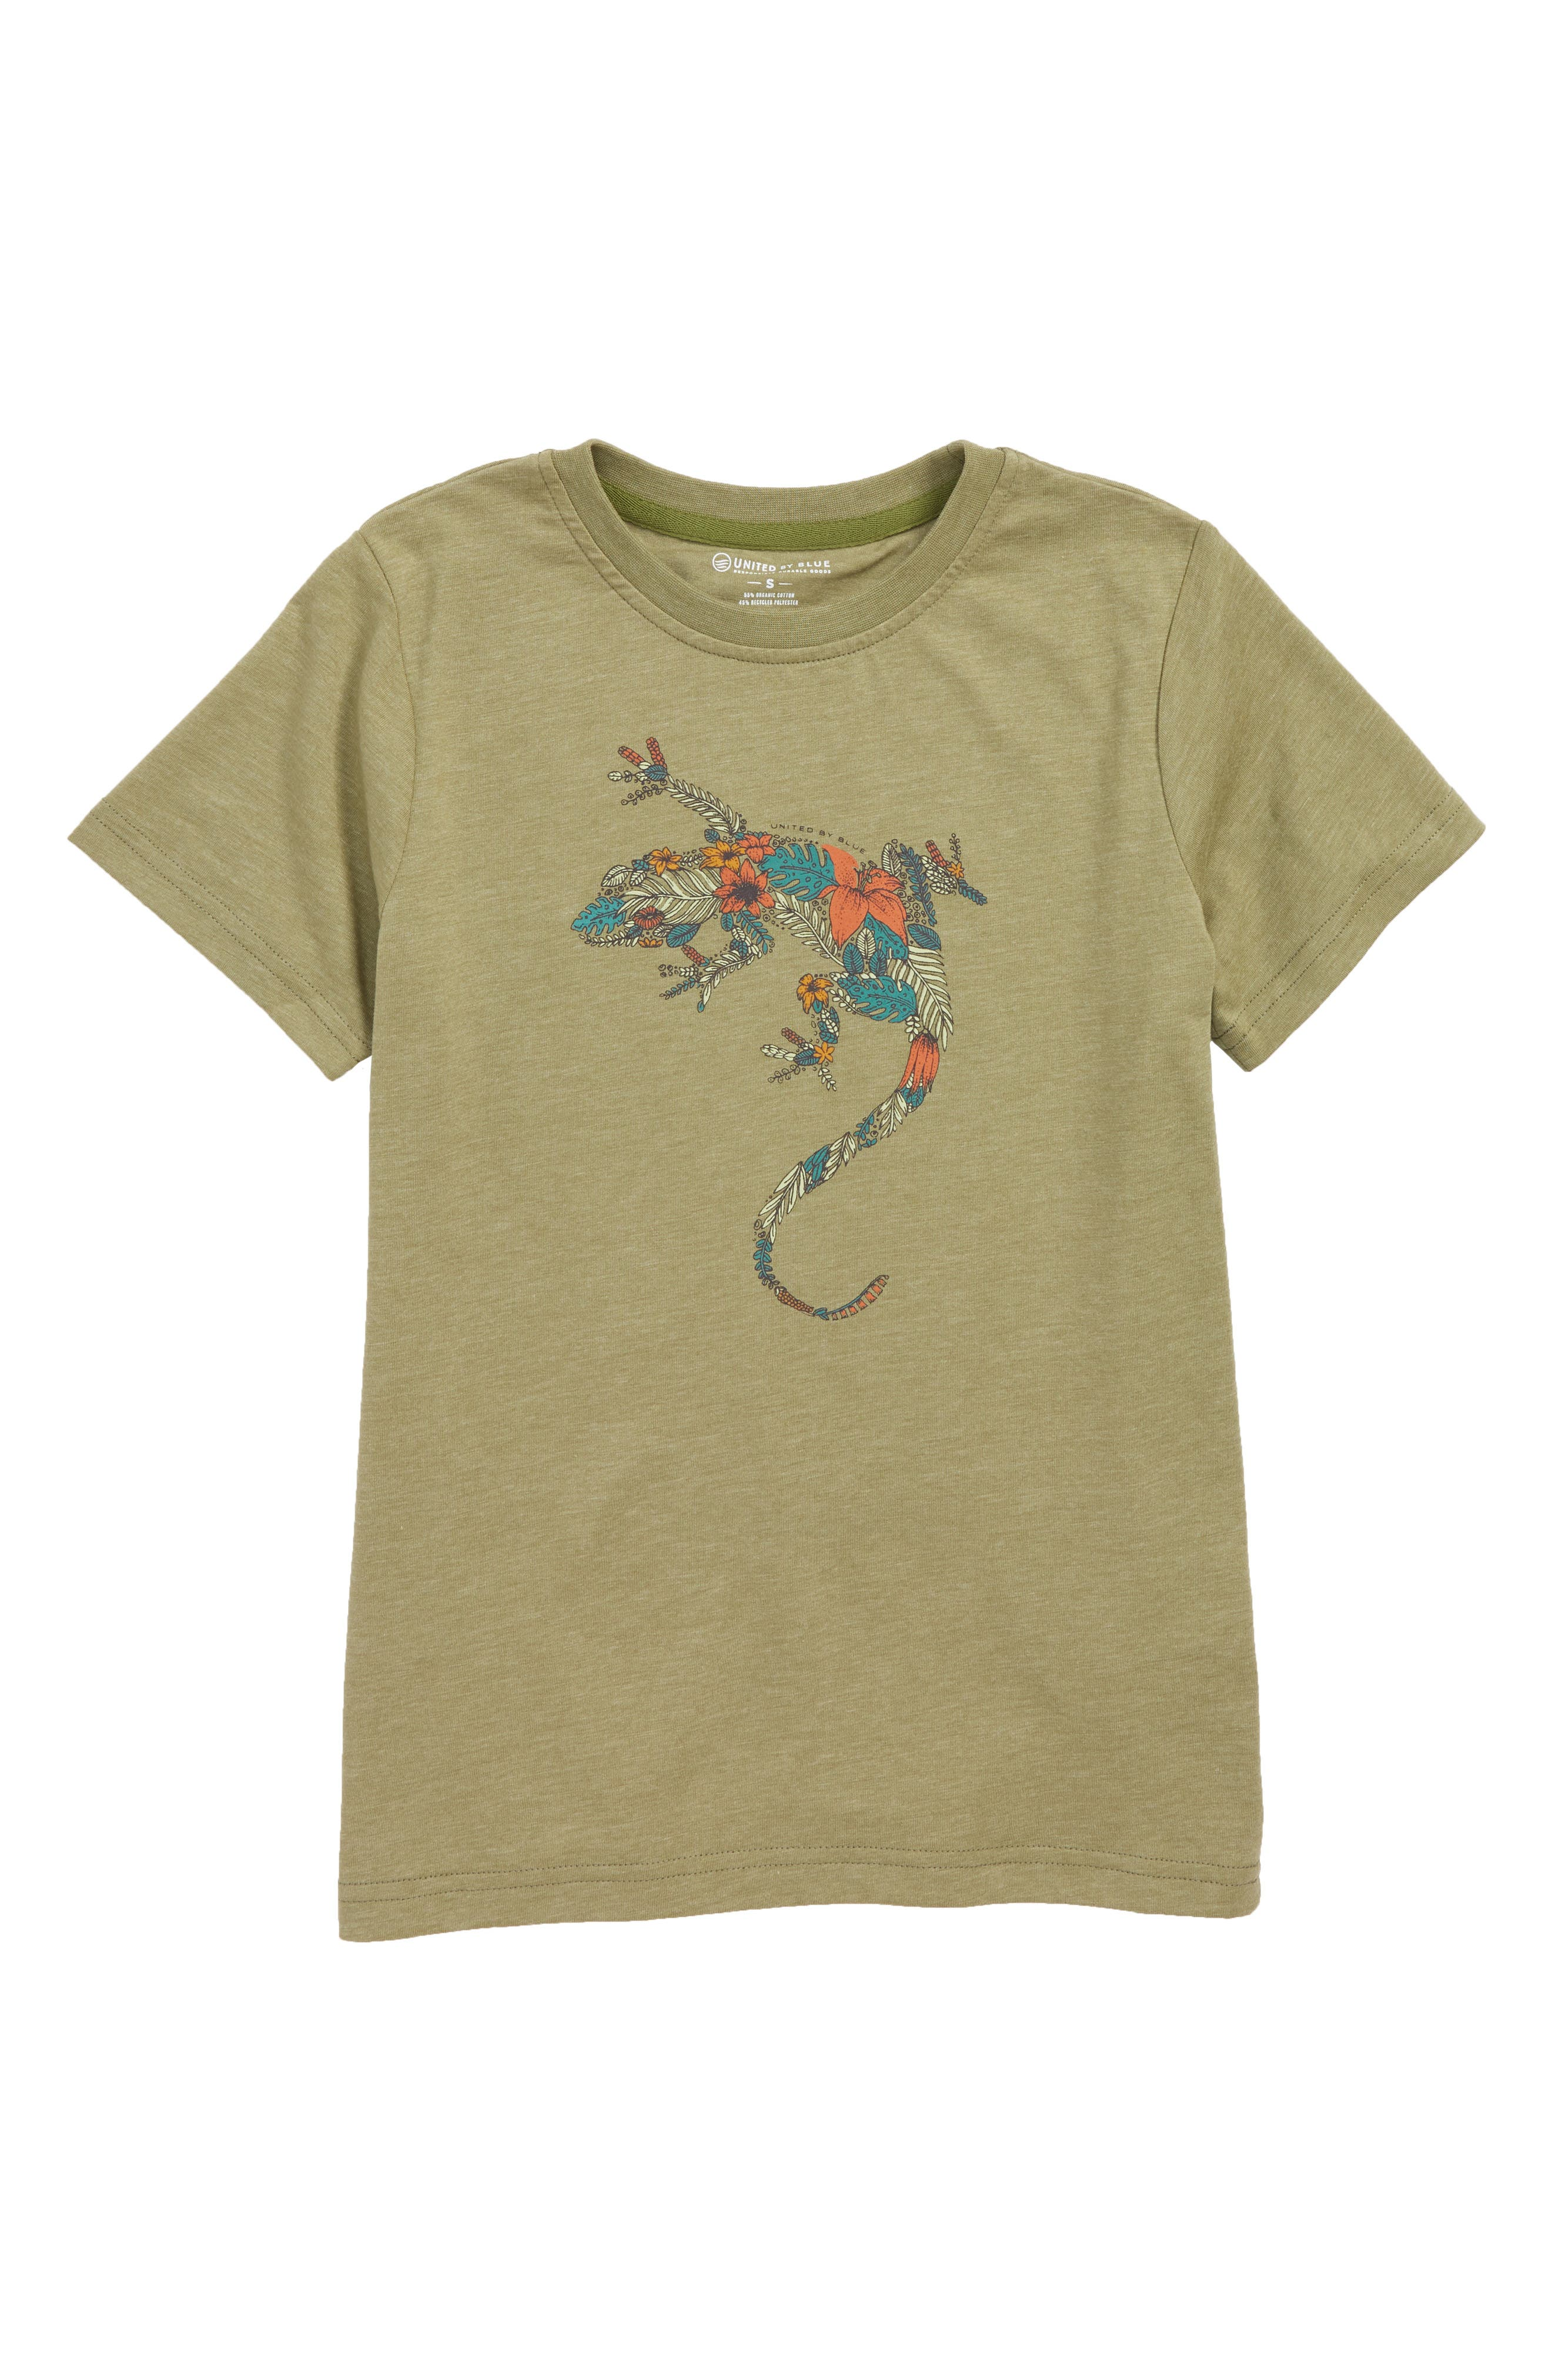 Wild Gecko Graphic T-Shirt,                         Main,                         color, 300